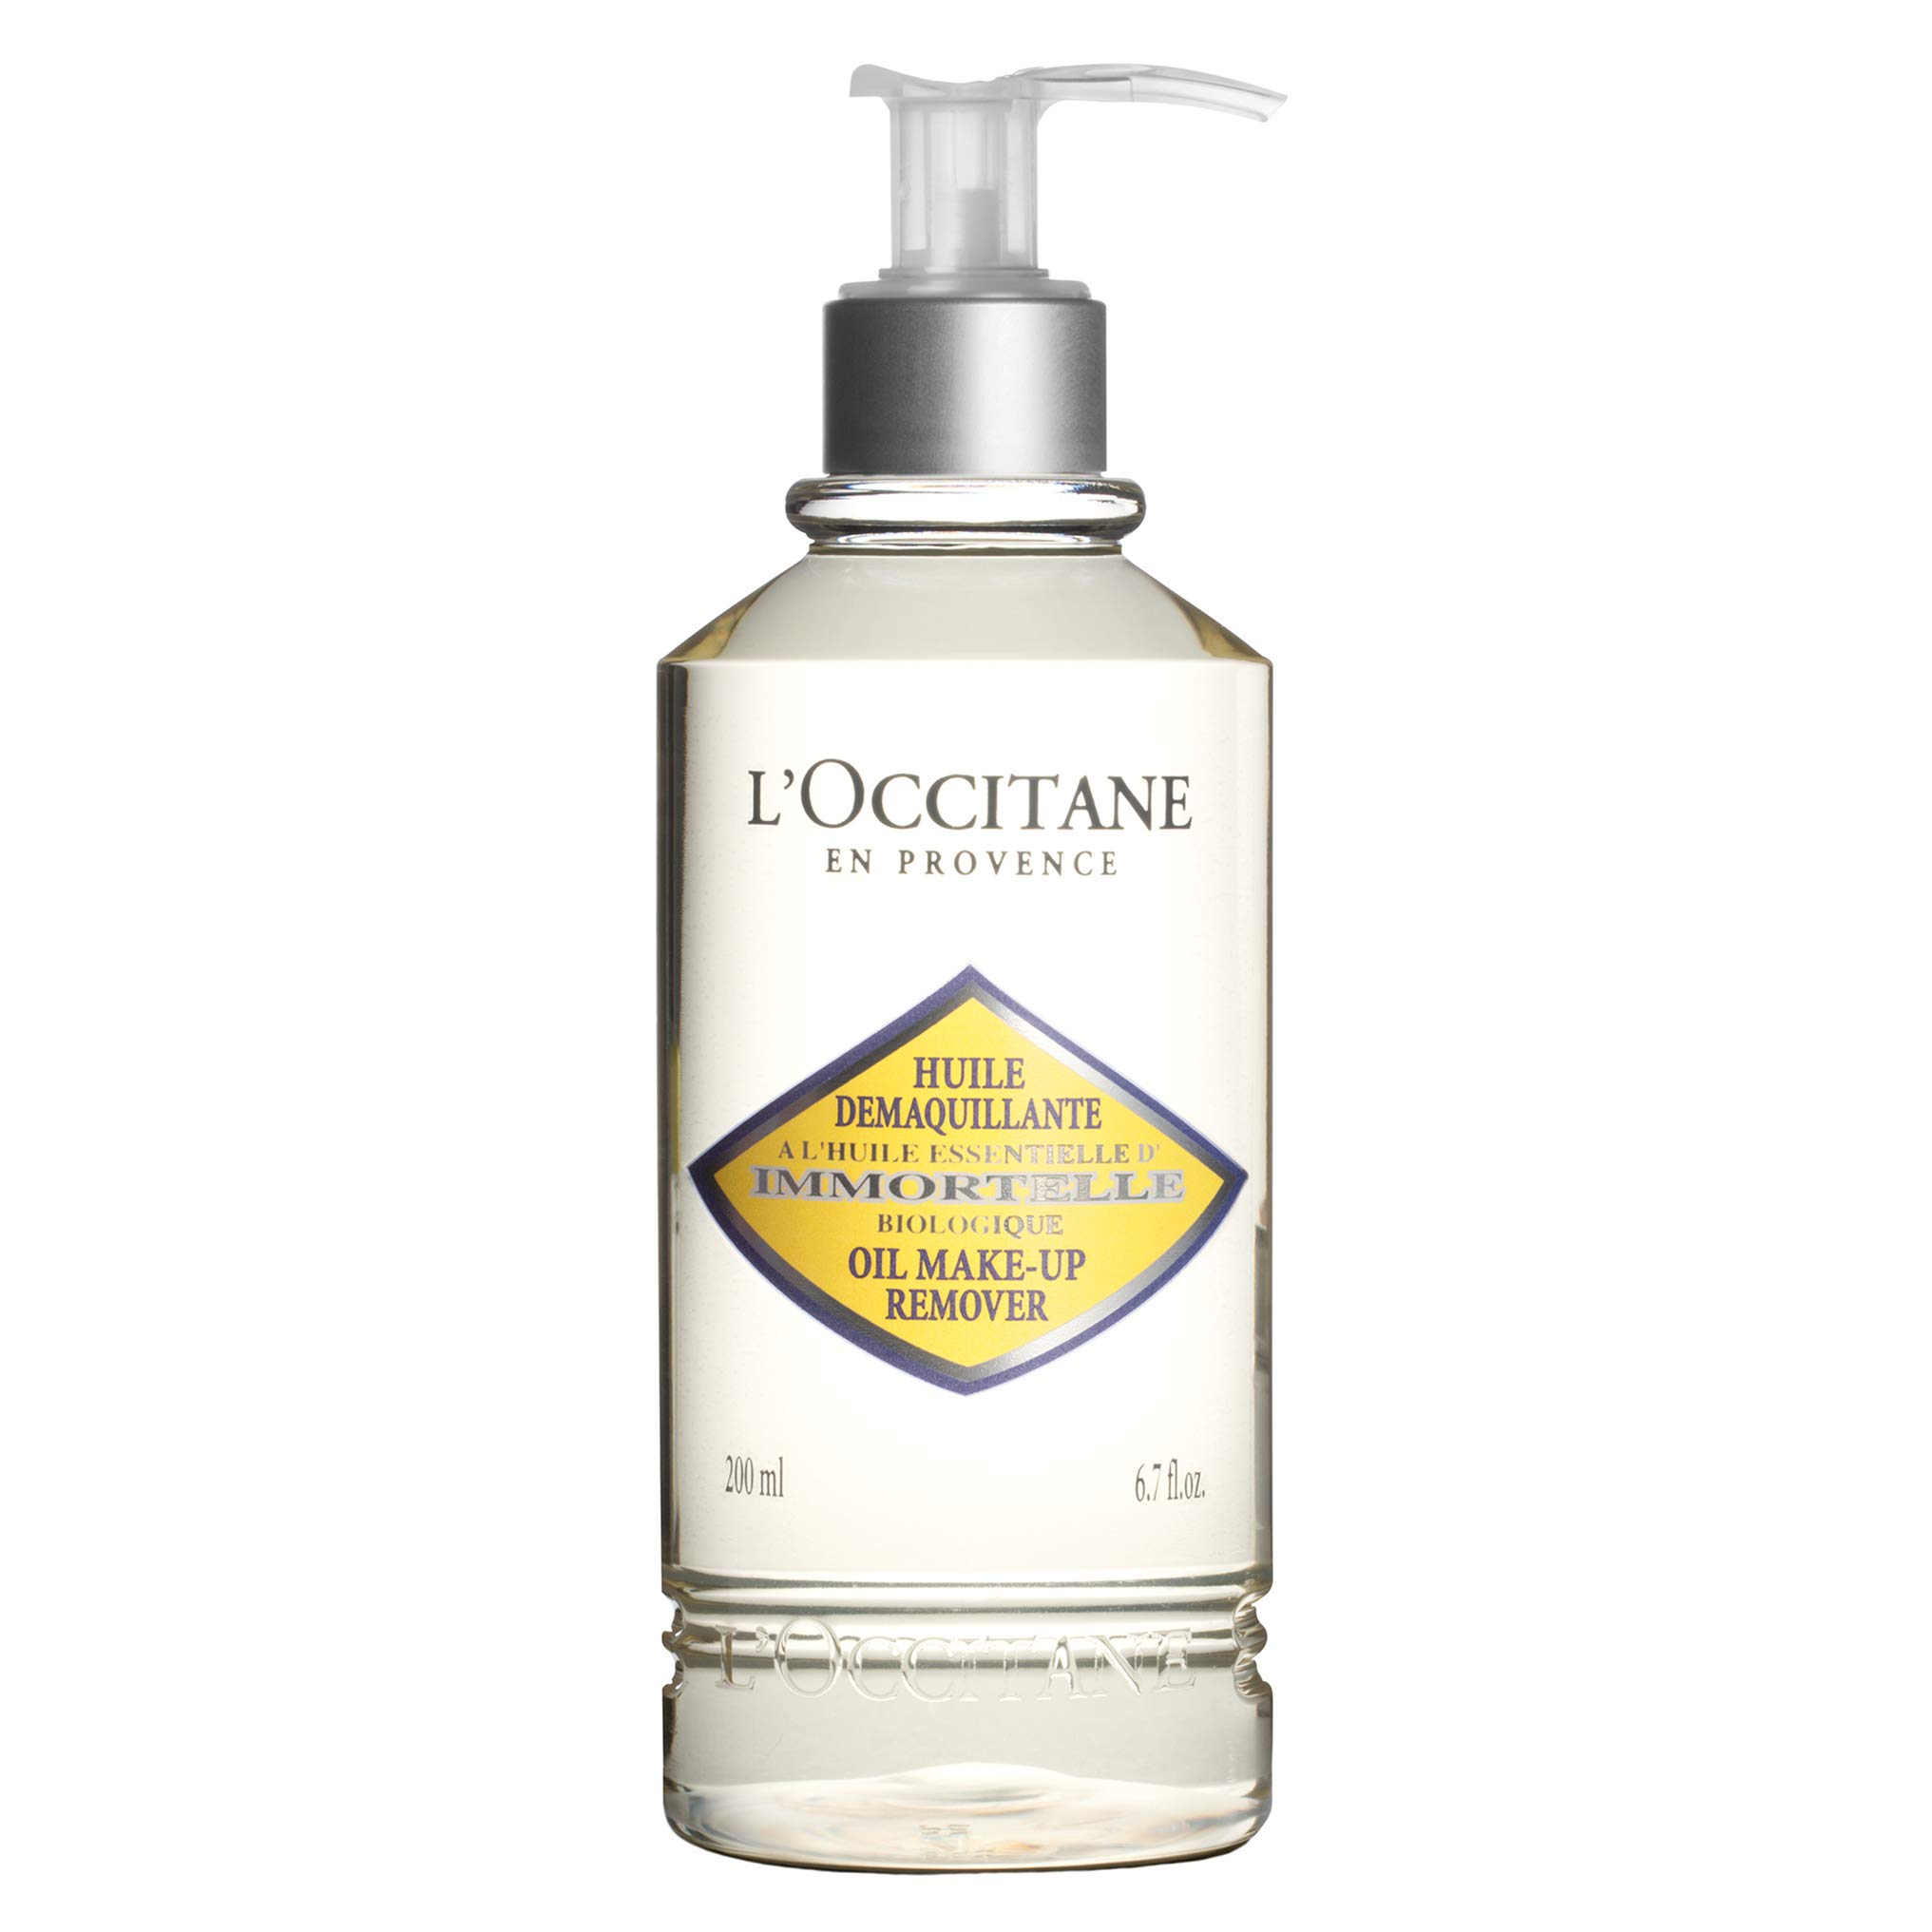 L'Occitane Silky Immortelle Oil Cleanser and Make-up Remover for All Skin Types, 6.7 fl. oz.